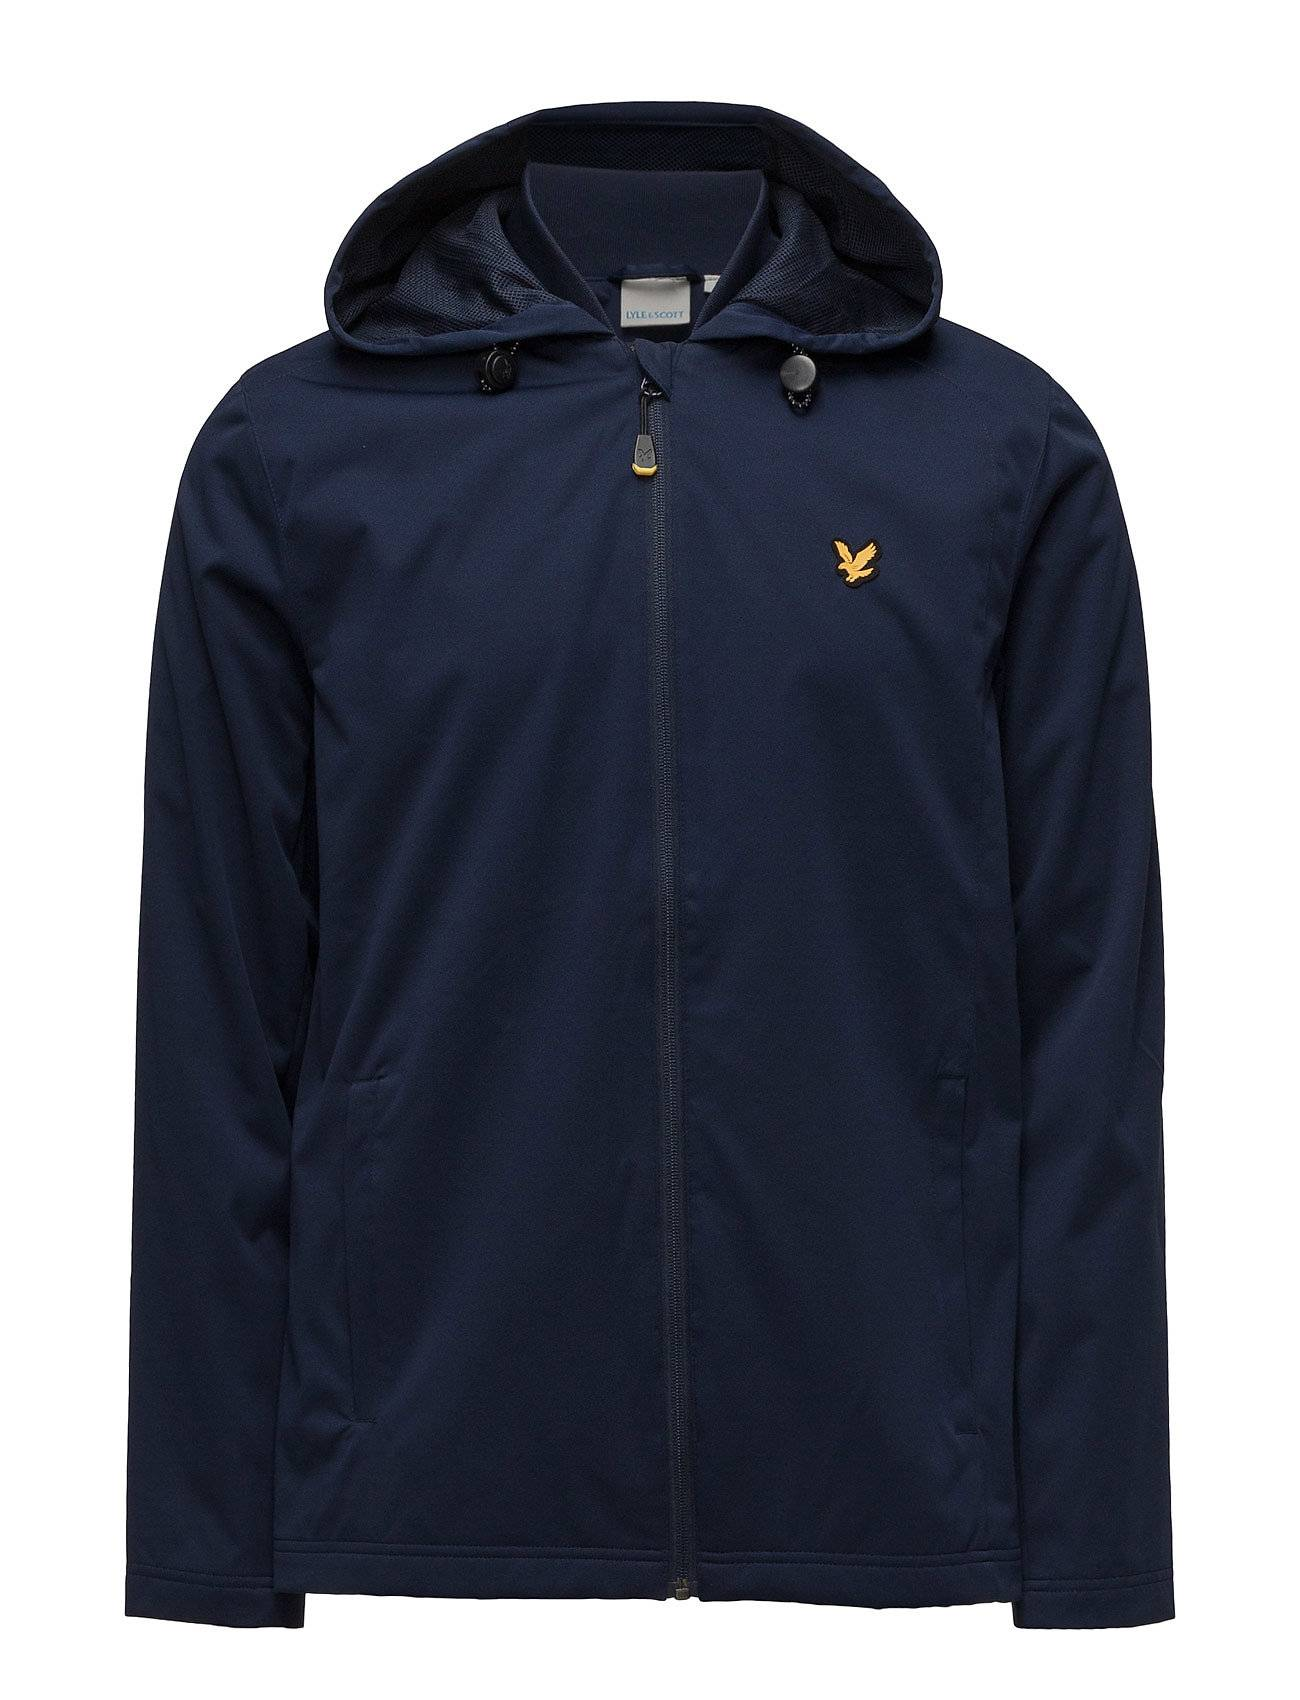 Scott Bennett Hooded Running Jacket